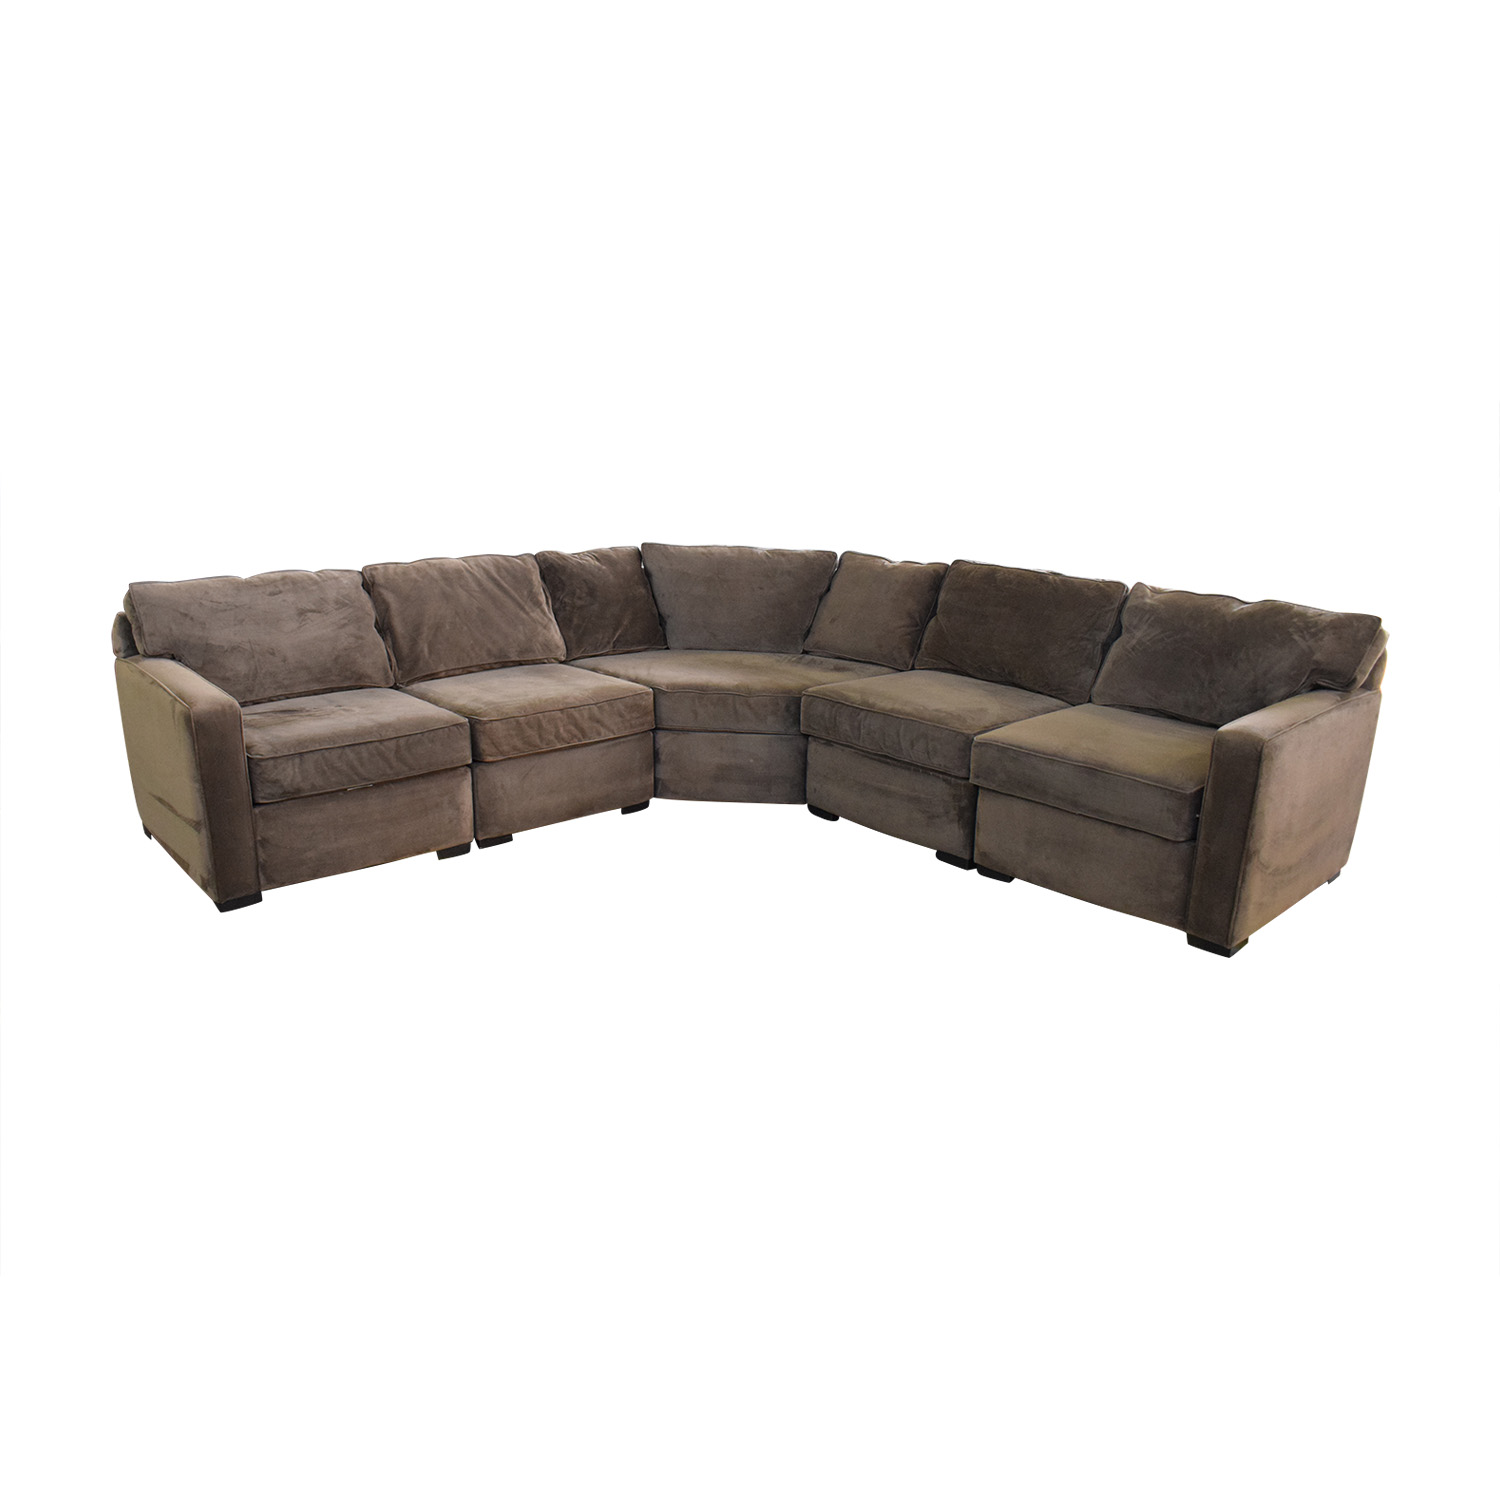 Macy's Macy's Sectional Sofa used